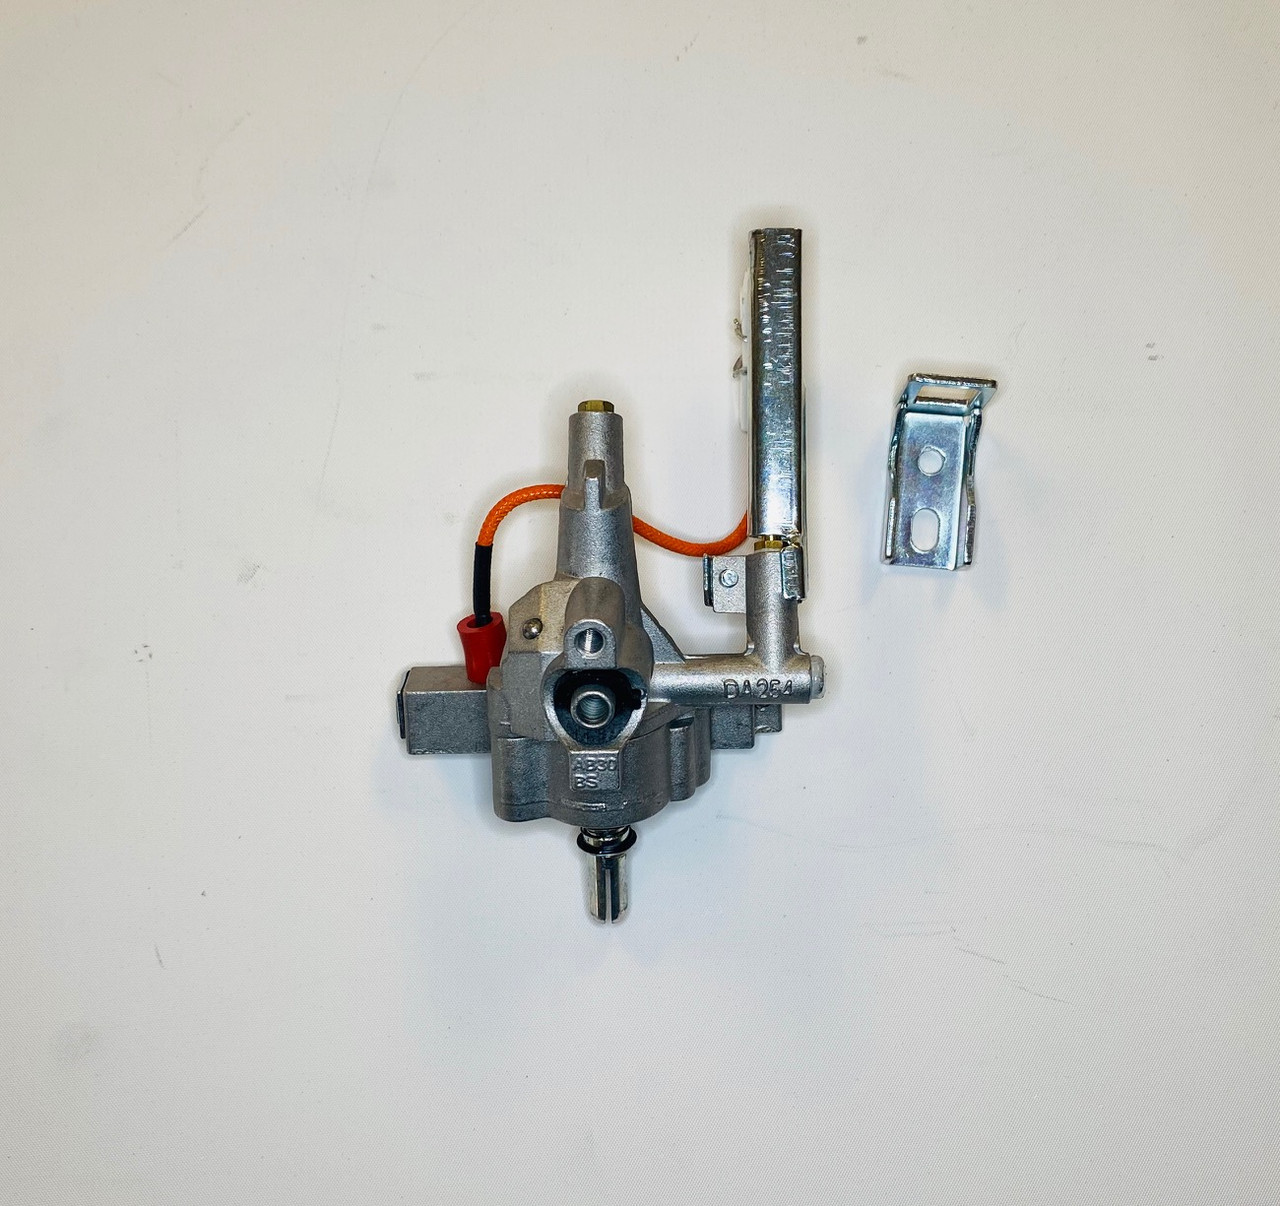 Delsol Delta Grills - Gas Valve with Flame Thrower - Propane (S15144-60)